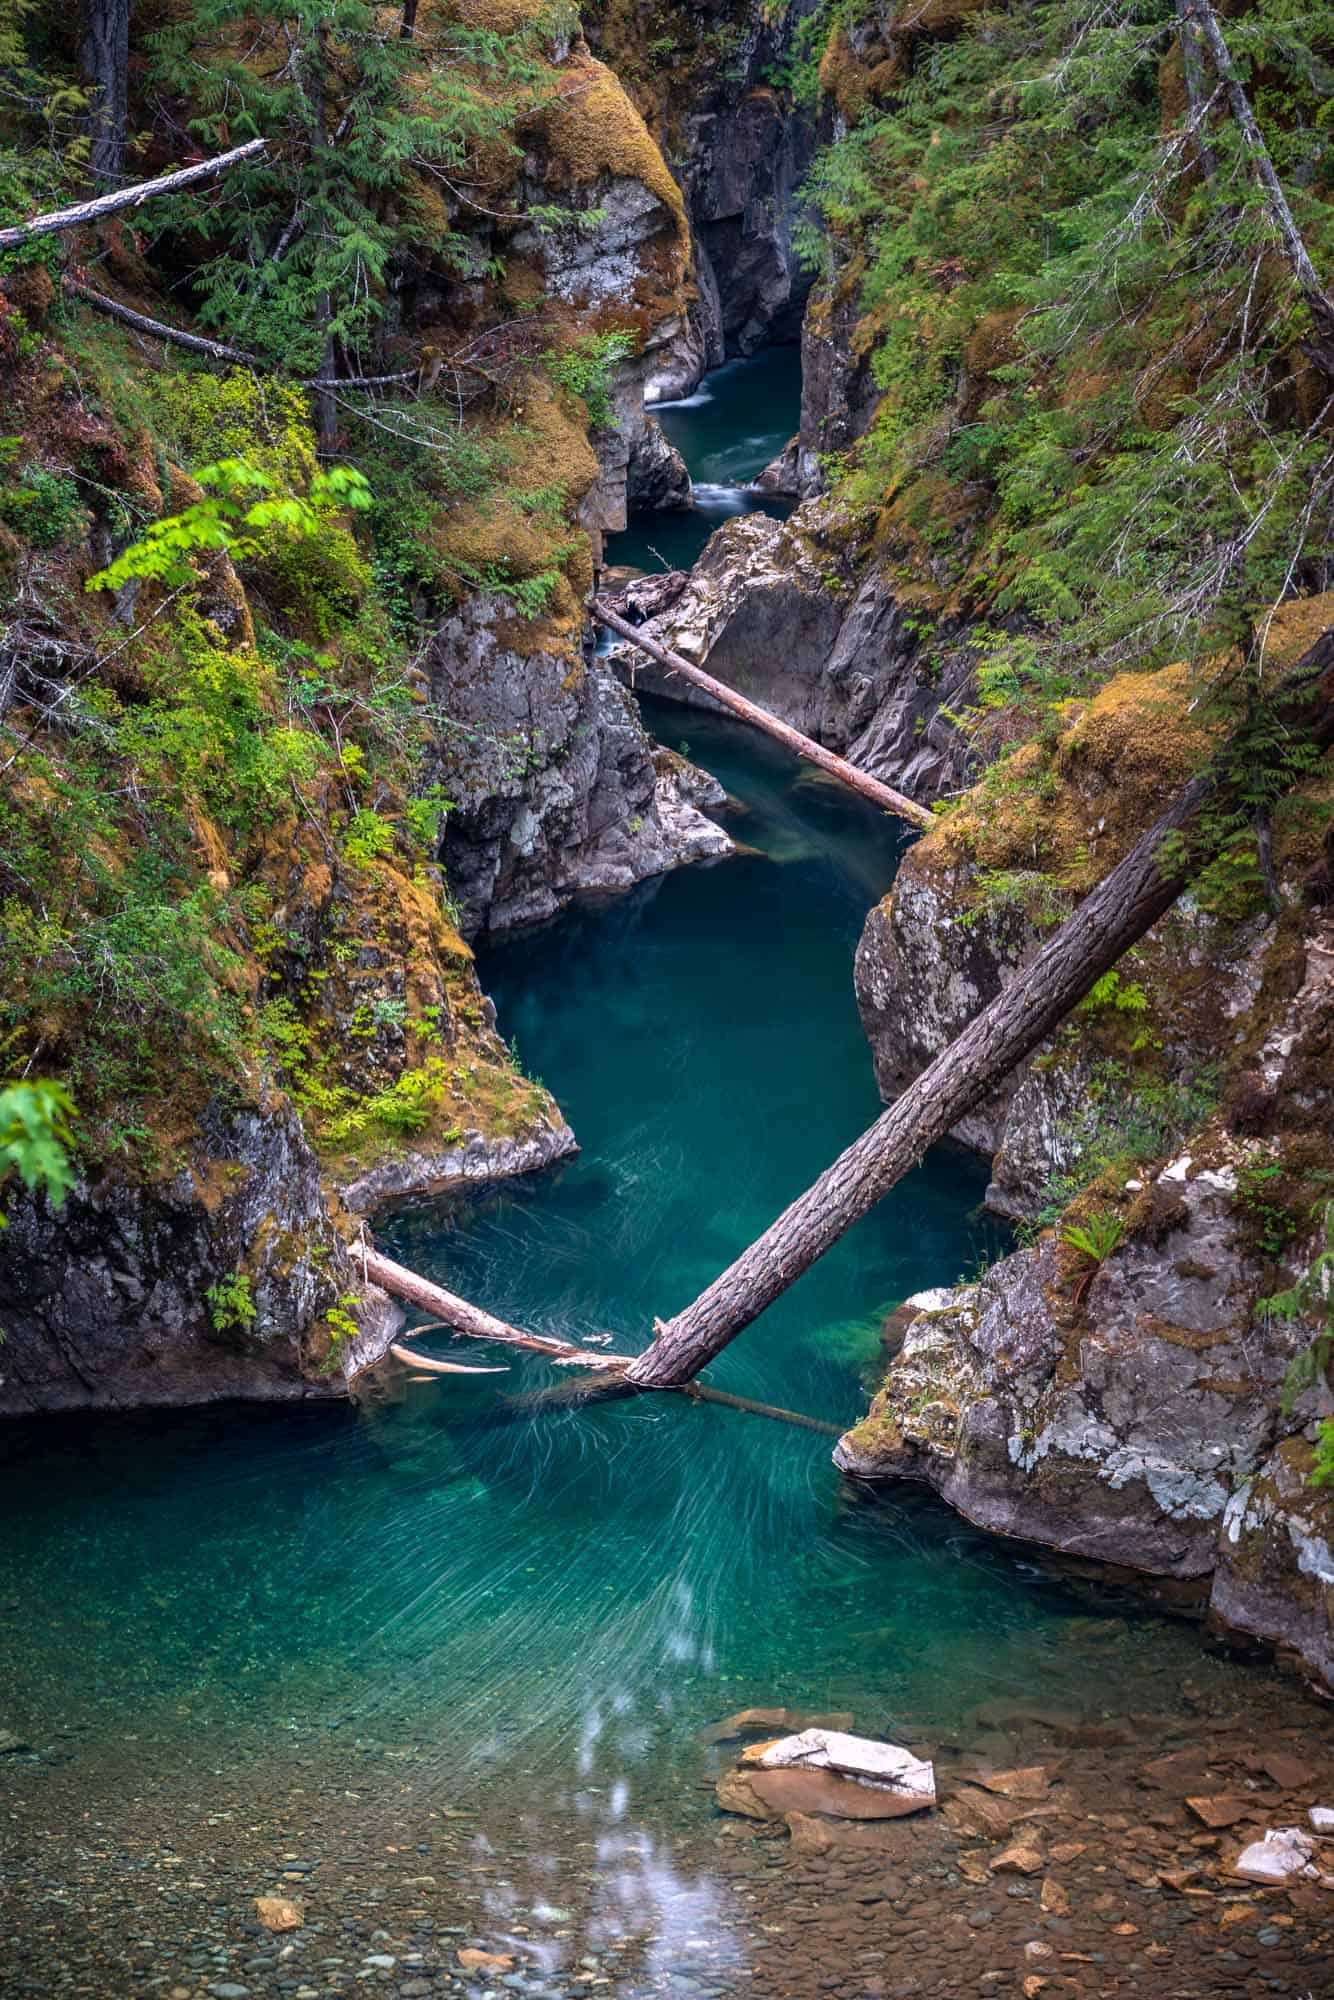 The emerald green water of Little Qualicum Falls carves its way through the gorge.